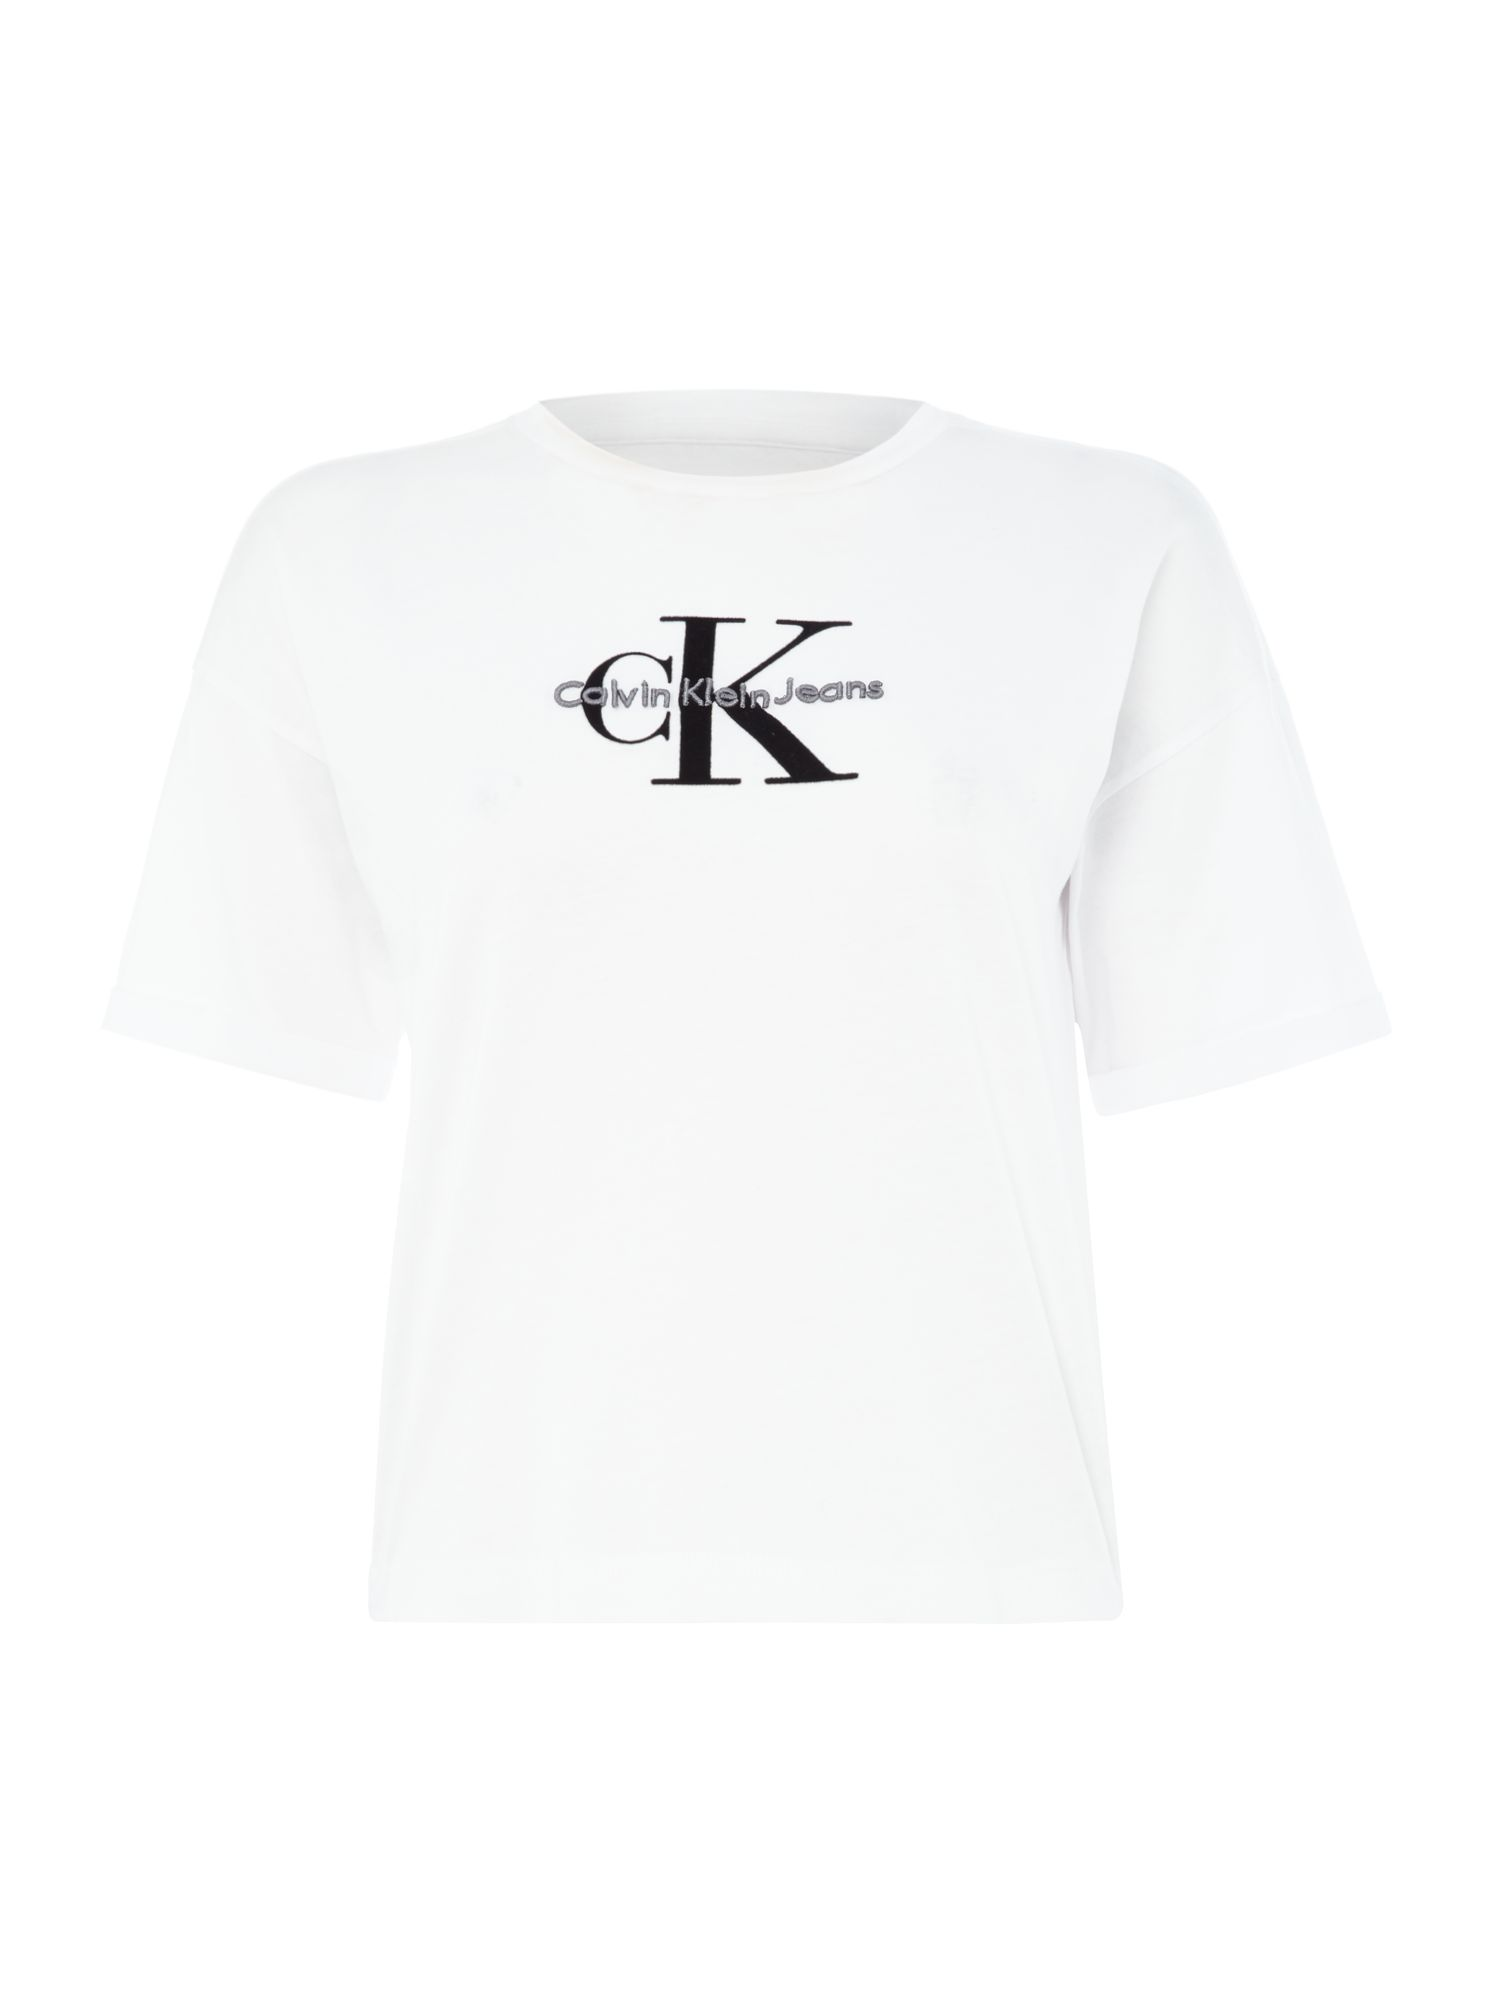 Calvin Klein Teco short sleeve true icon crop tshirt, White